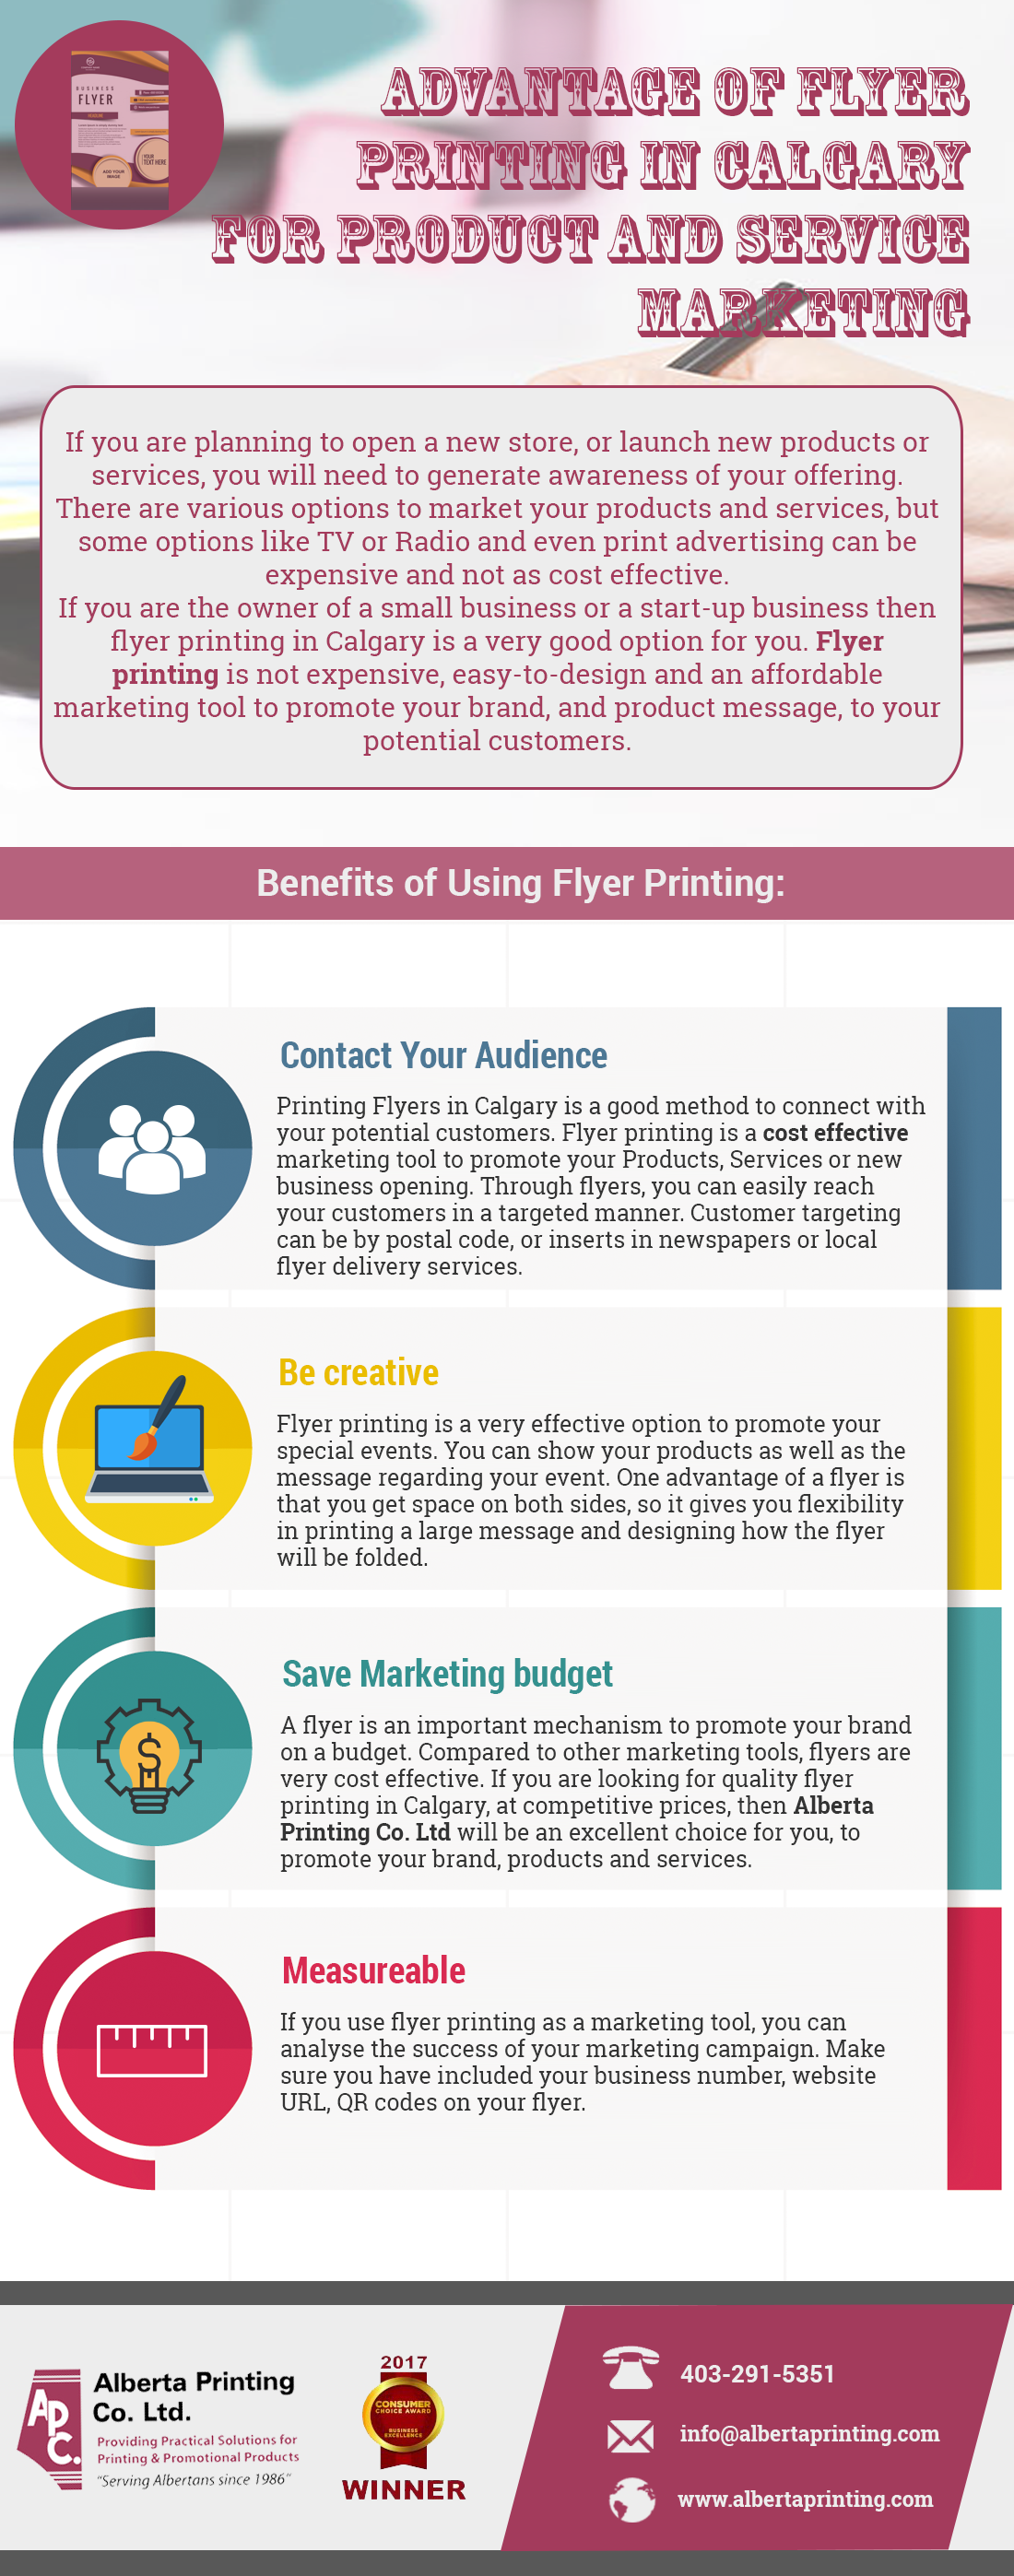 Advantage of Flyer Printing in Calgary for Product and Service Marketing